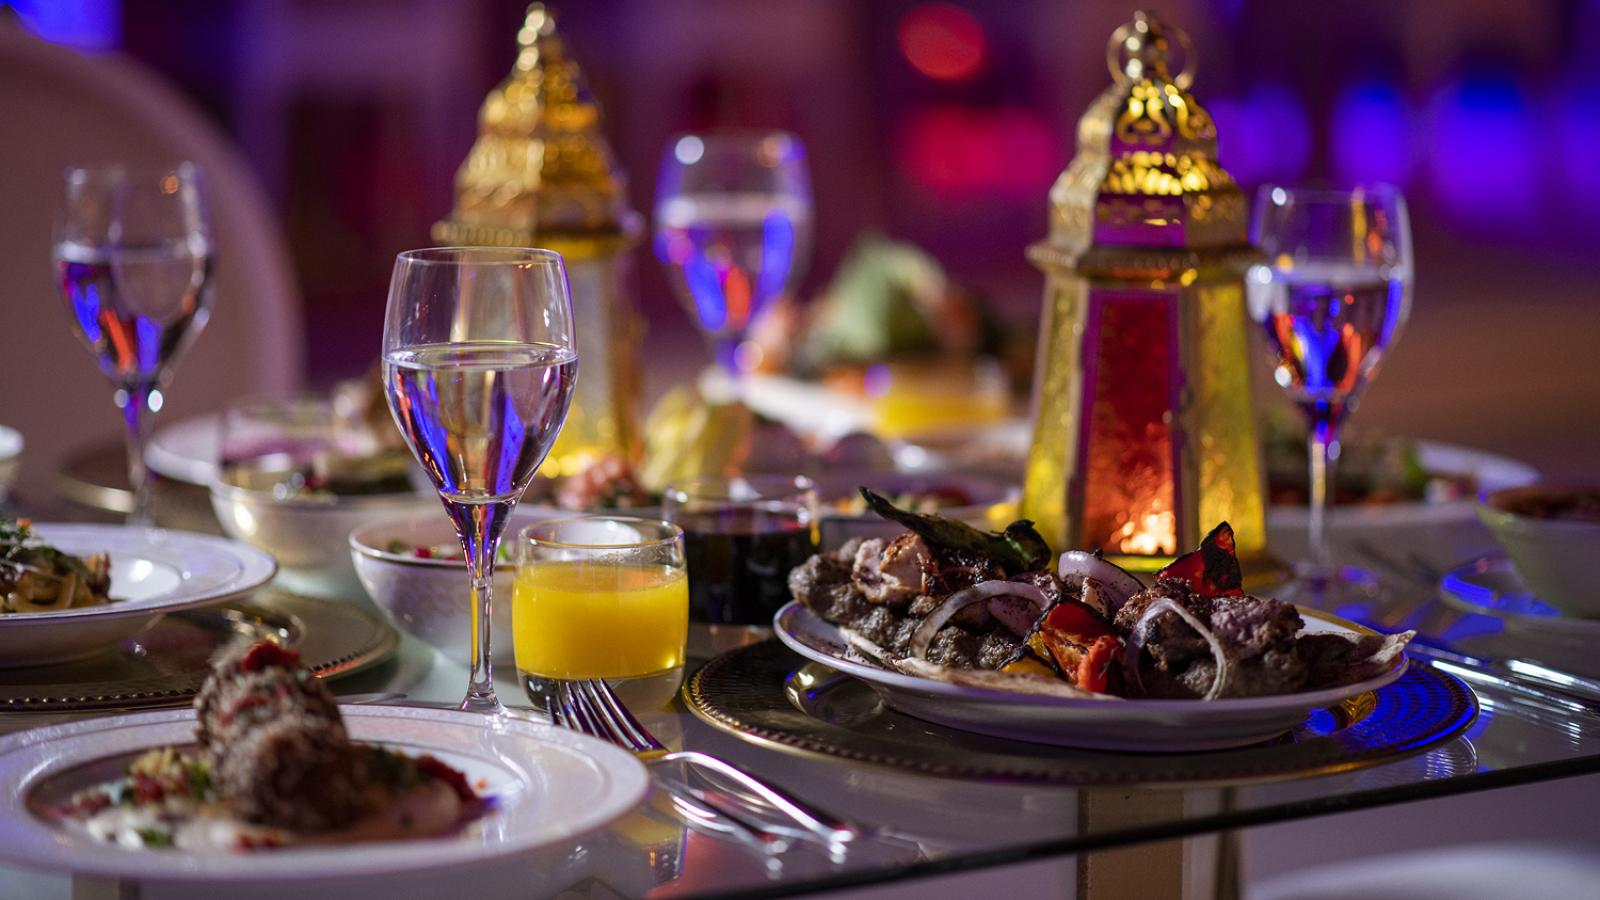 Sheraton Grand Doha Resort & Convention Hotel has got you covered this Eid Al-Fitr